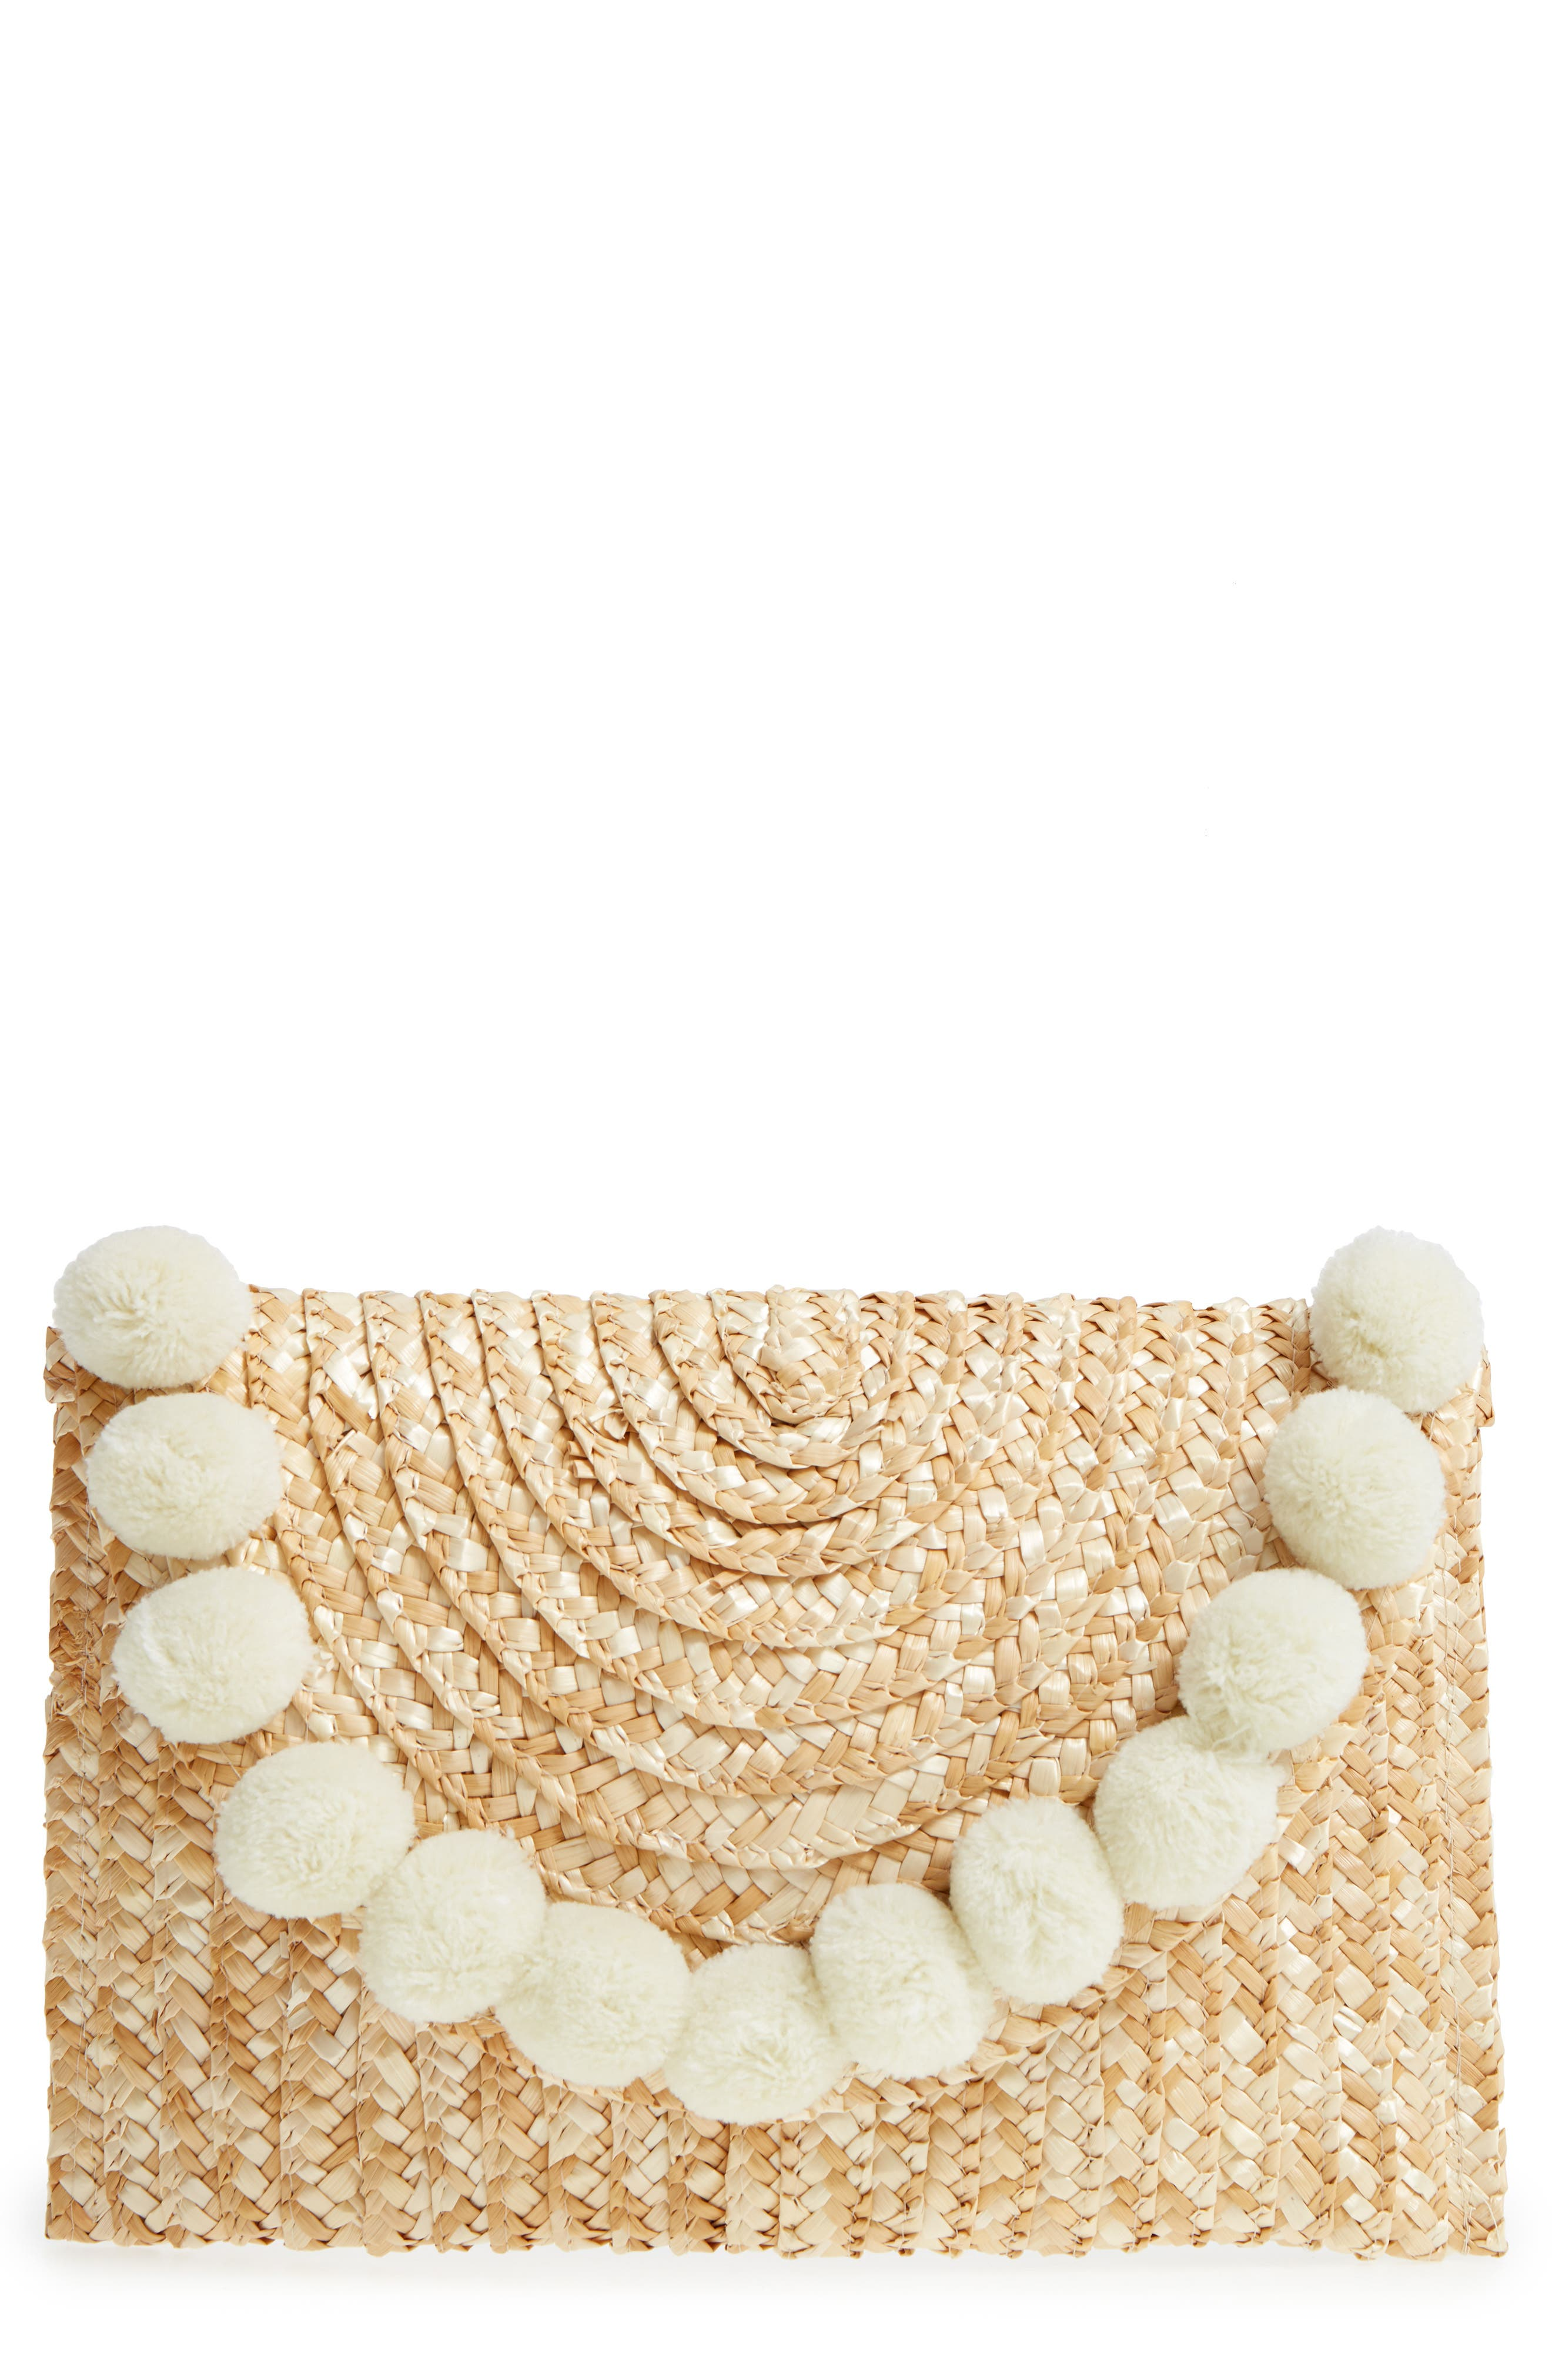 Fortuna Straw Clutch,                             Main thumbnail 1, color,                             256